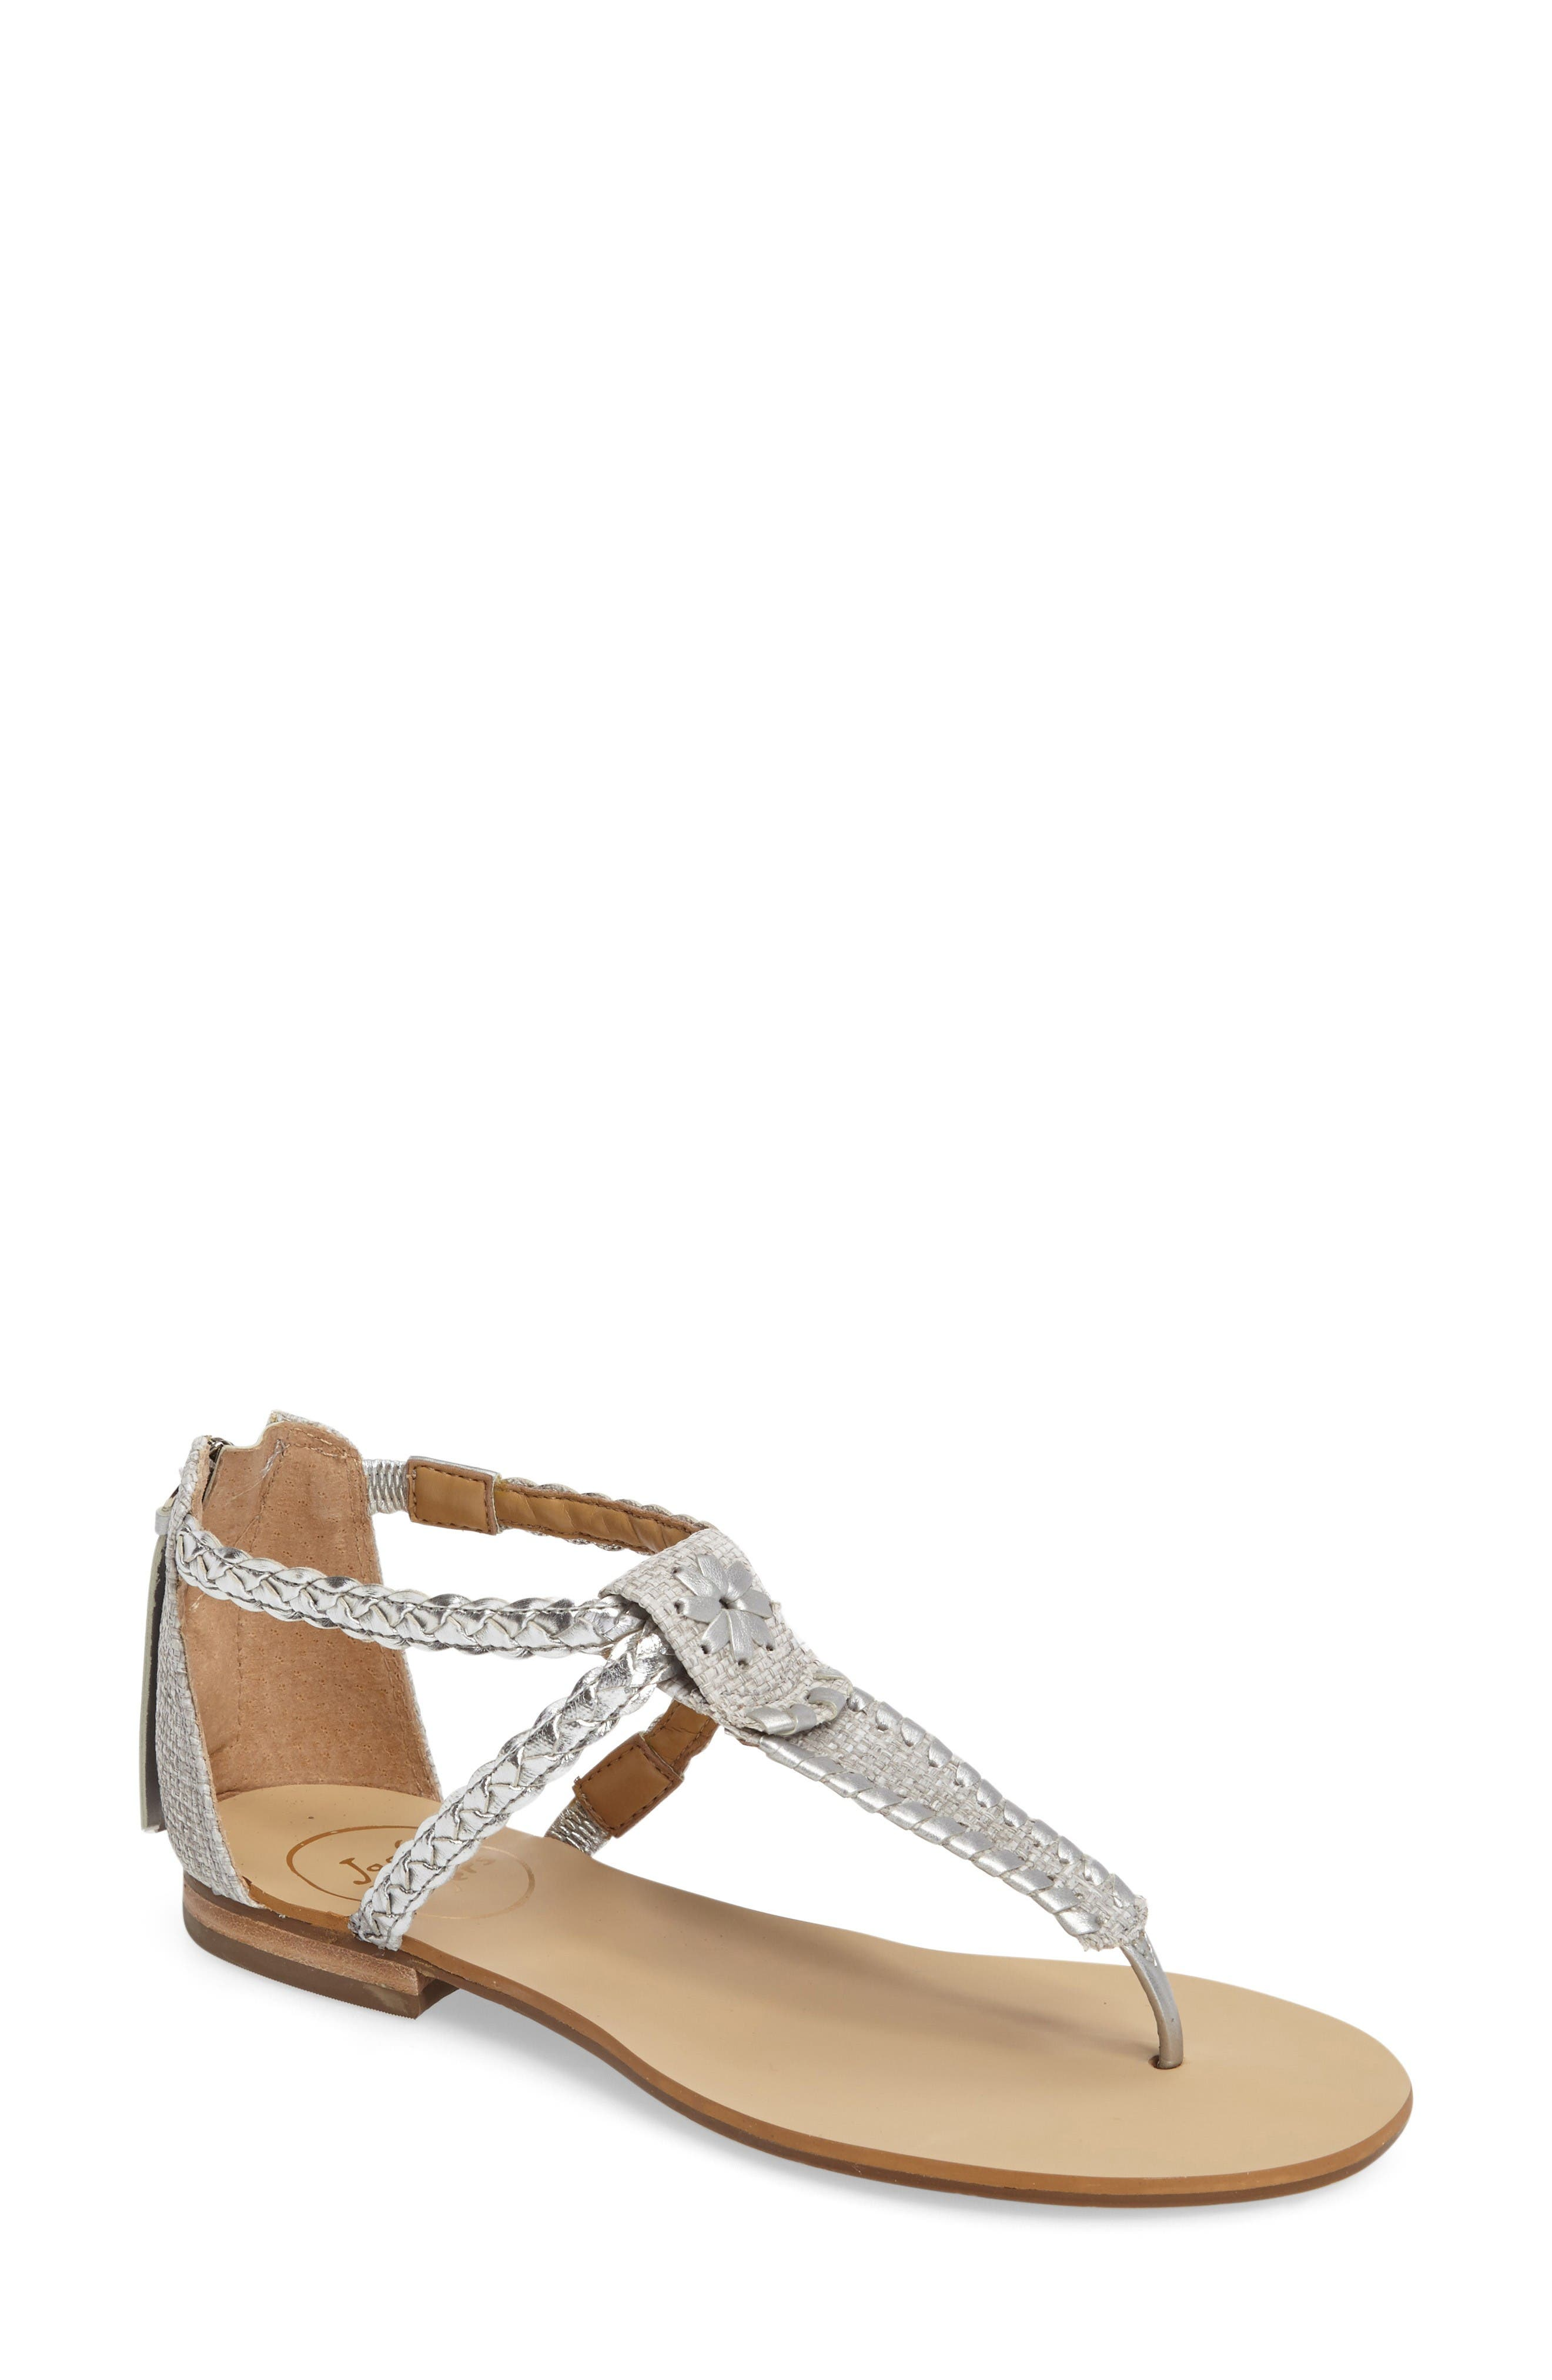 Alternate Image 1 Selected - Jack Rogers Jenna Sandal (Women)